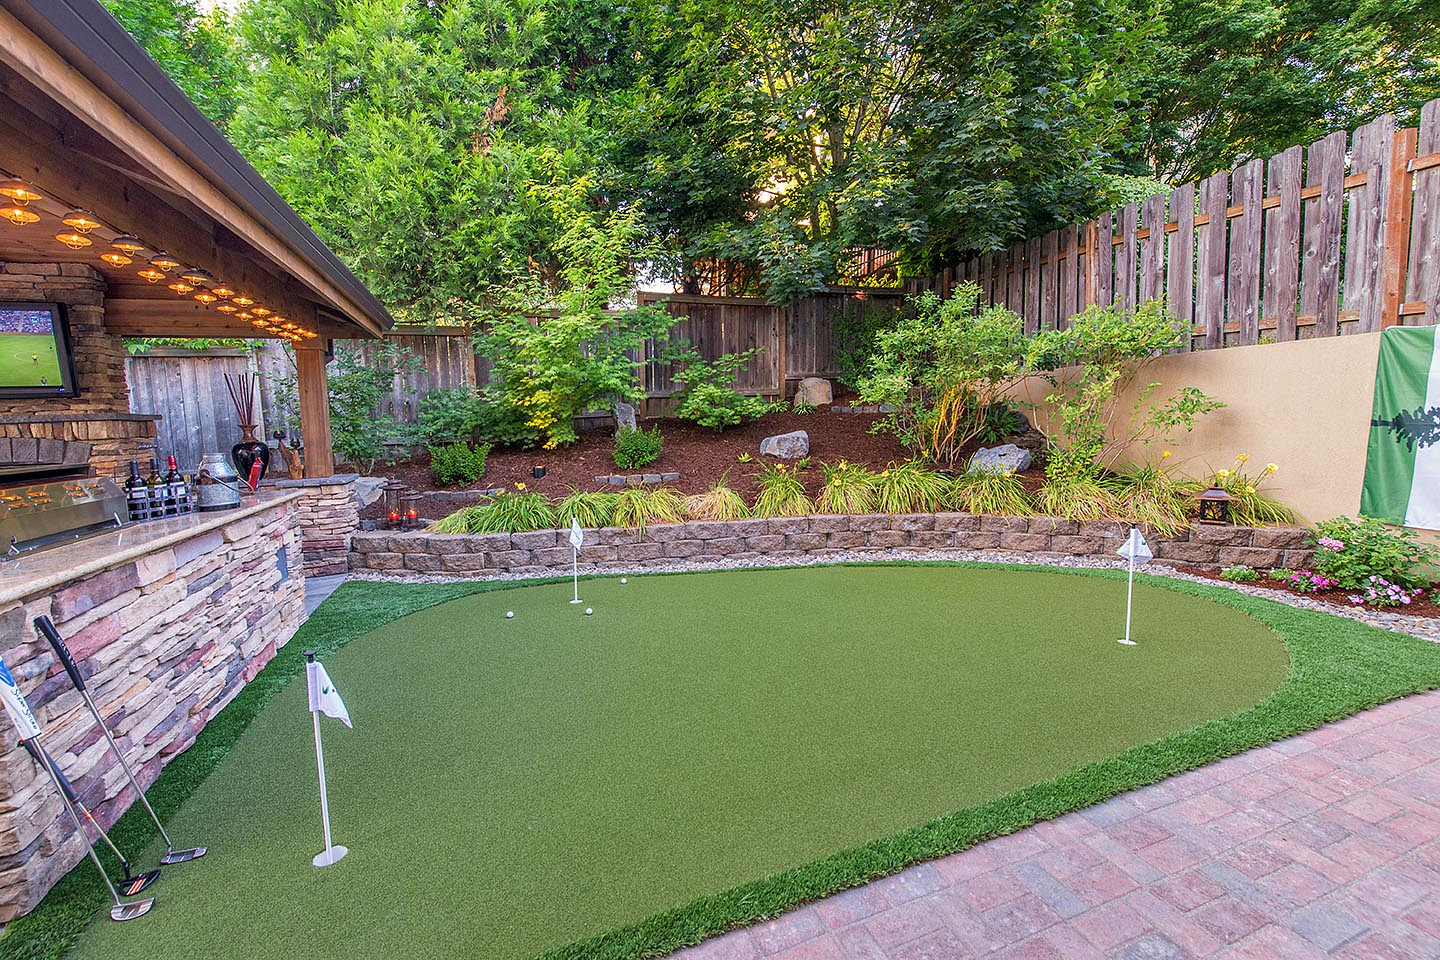 Roscoe Property Putting Green Installation by Paradise Restored Landscaping